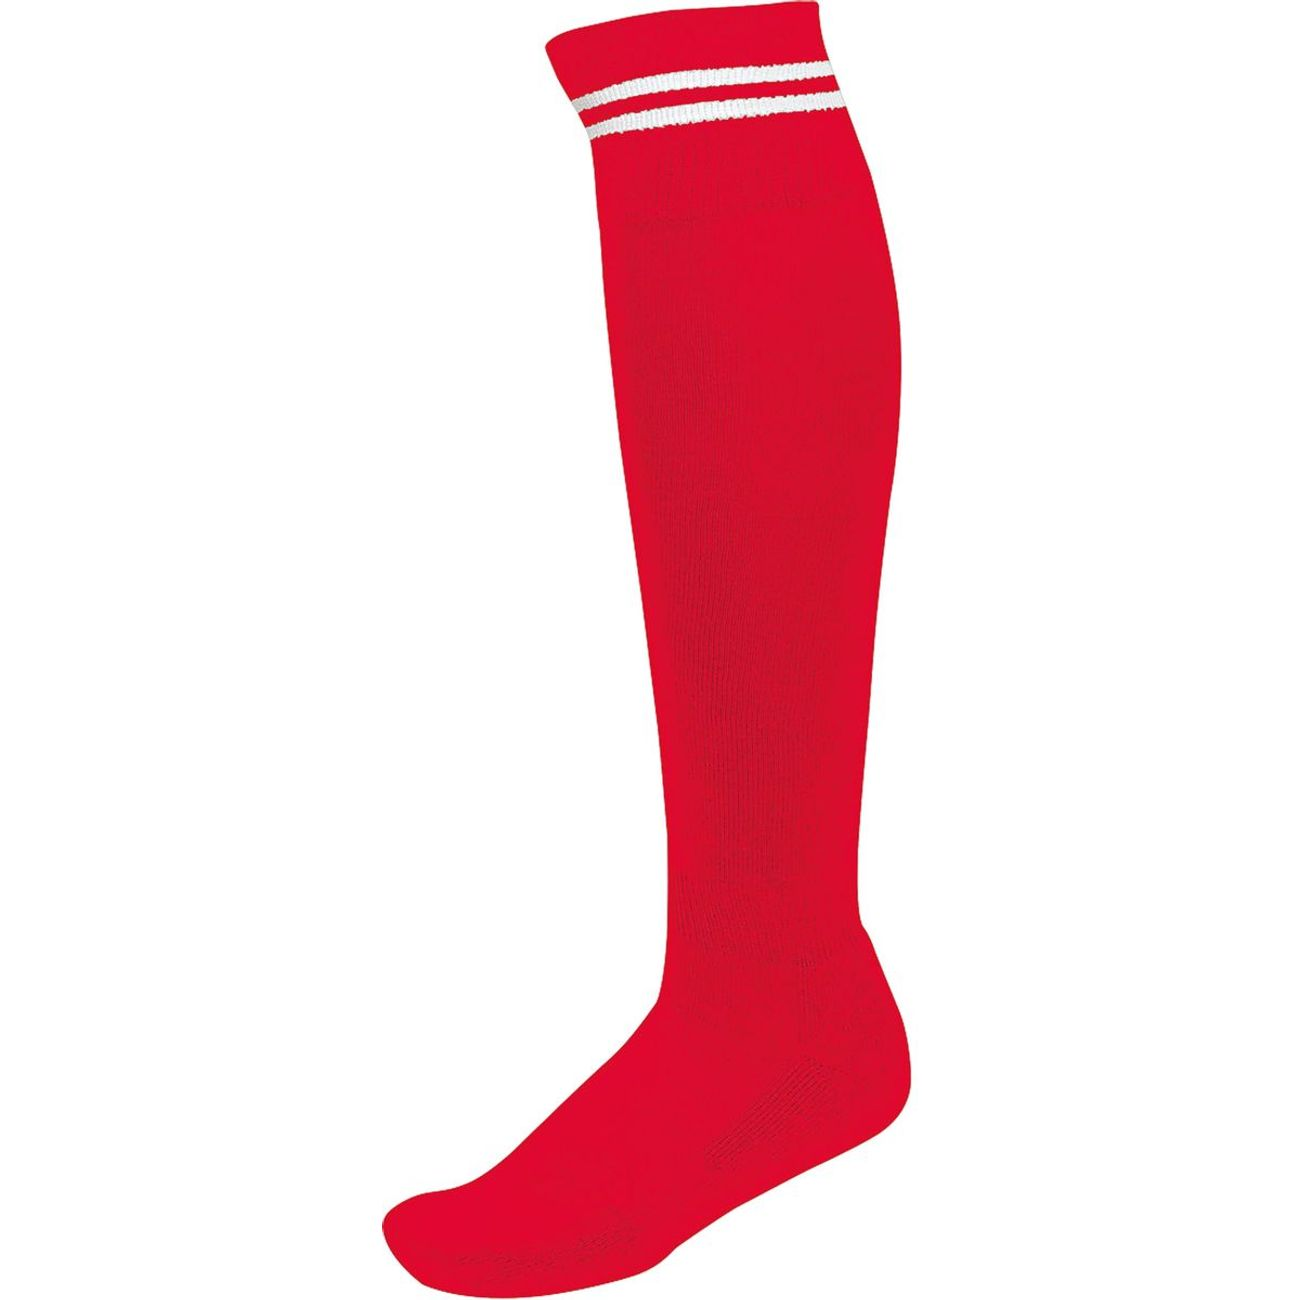 Proact Chaussettes Rayure Football Homme Rouge Blanche SportPa015 OuPTikwXZ